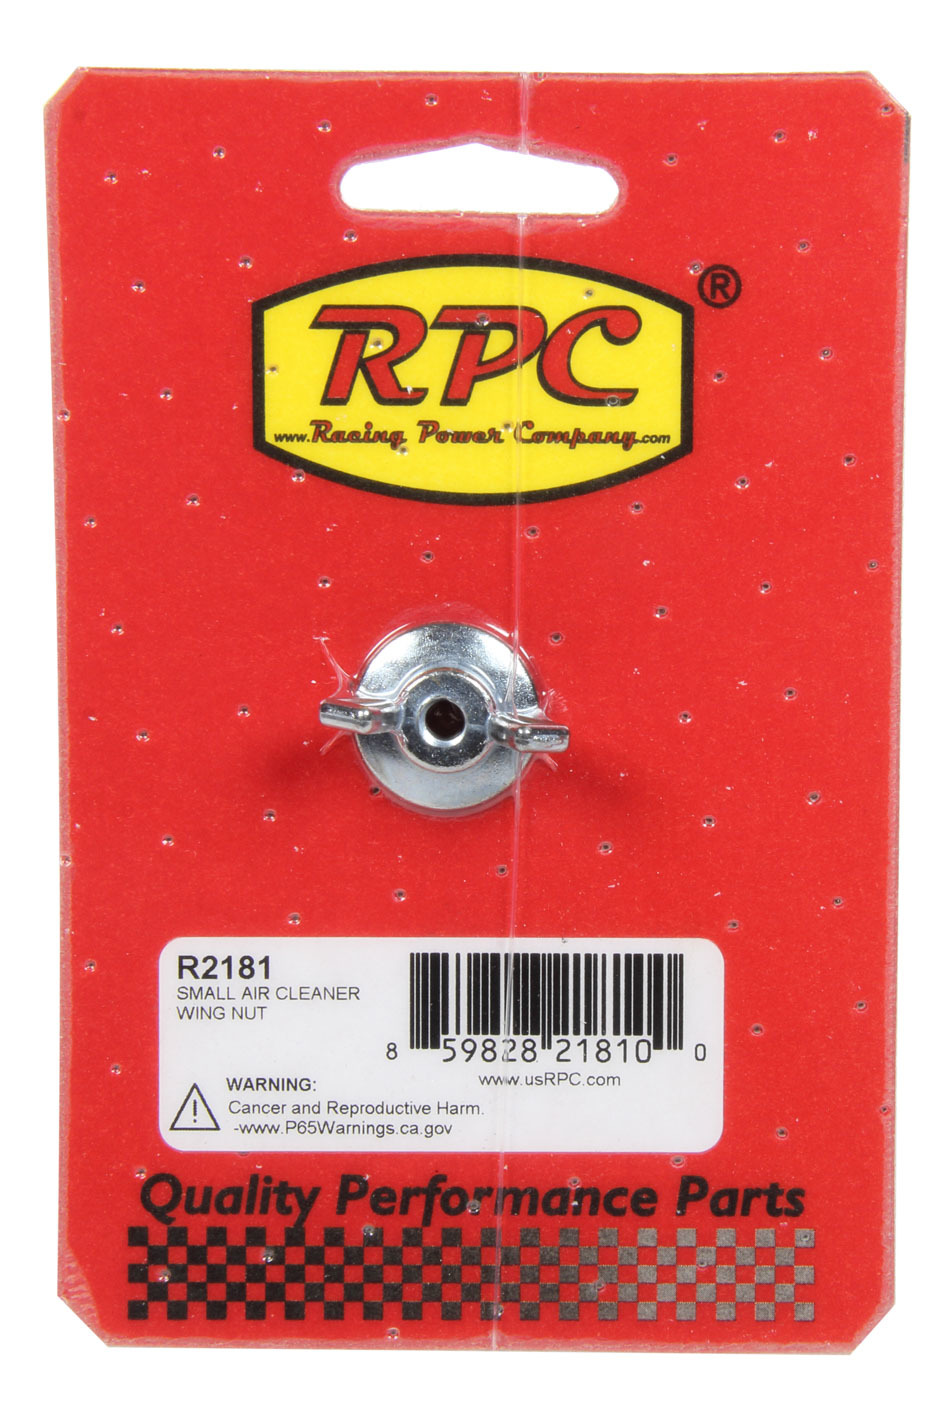 Racing Power Co-packaged Small Air Cleaner Wing Nut